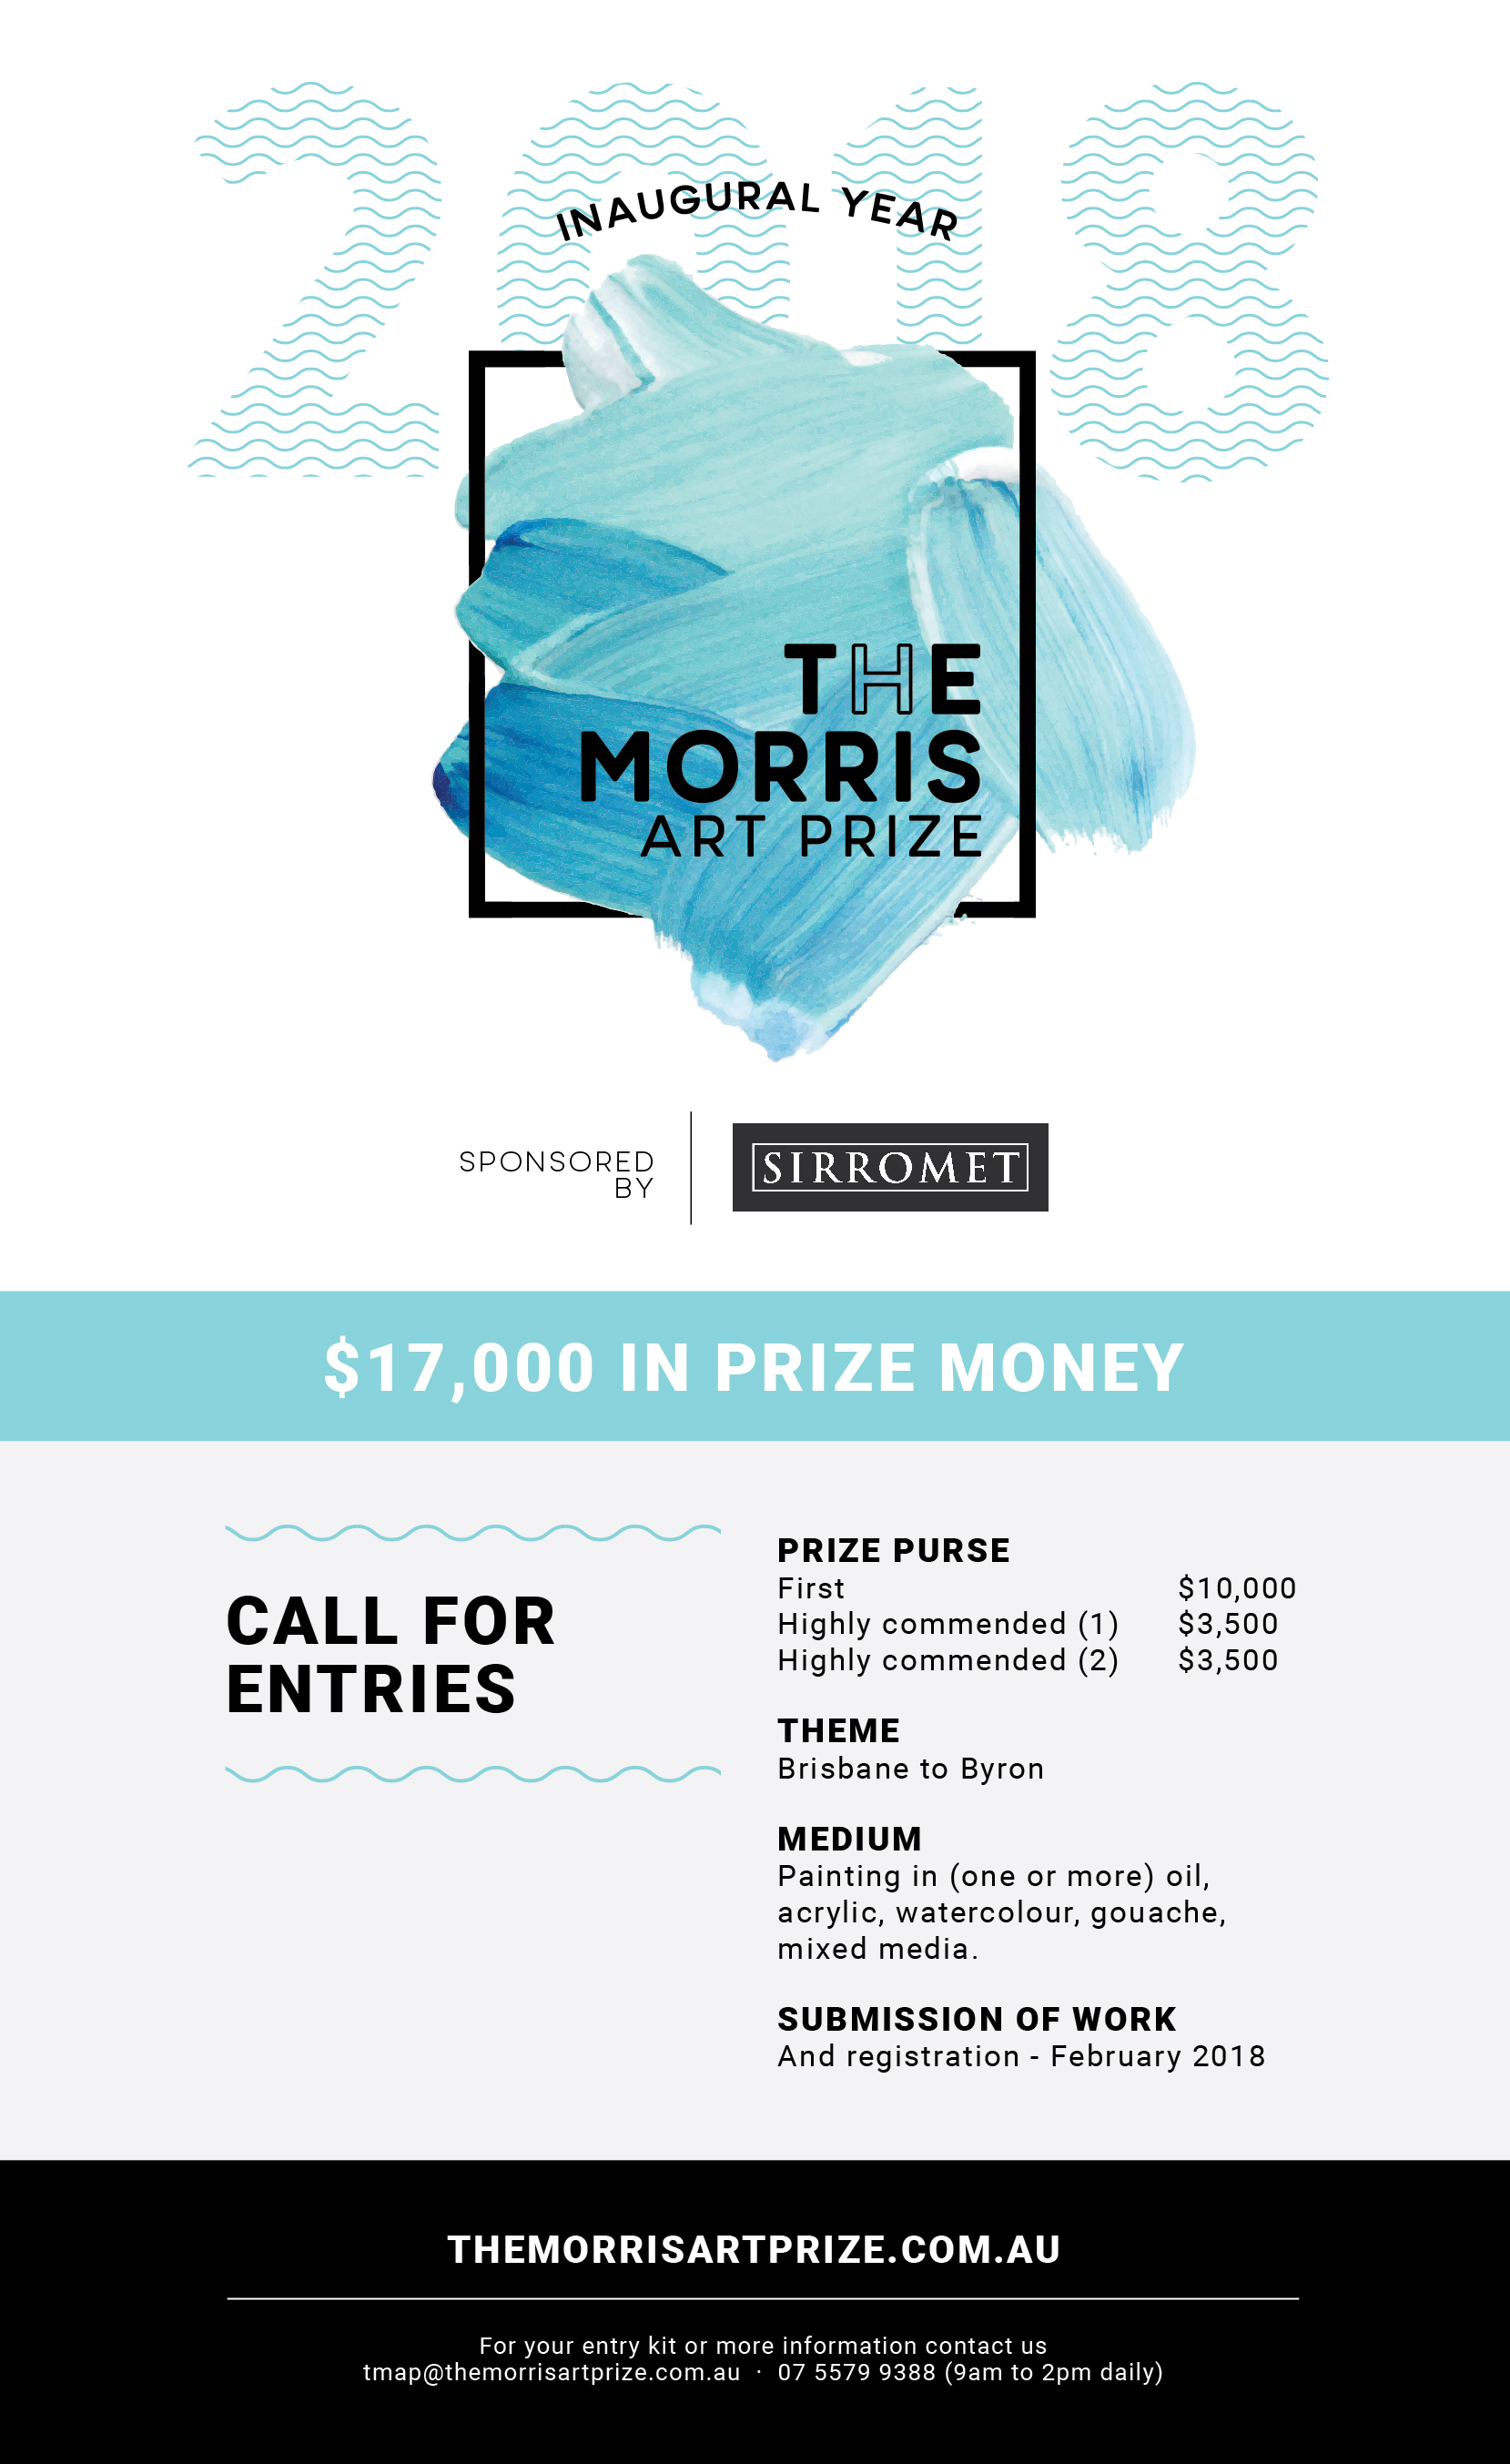 themorrisartprize_mailchimp-email-01.jpg